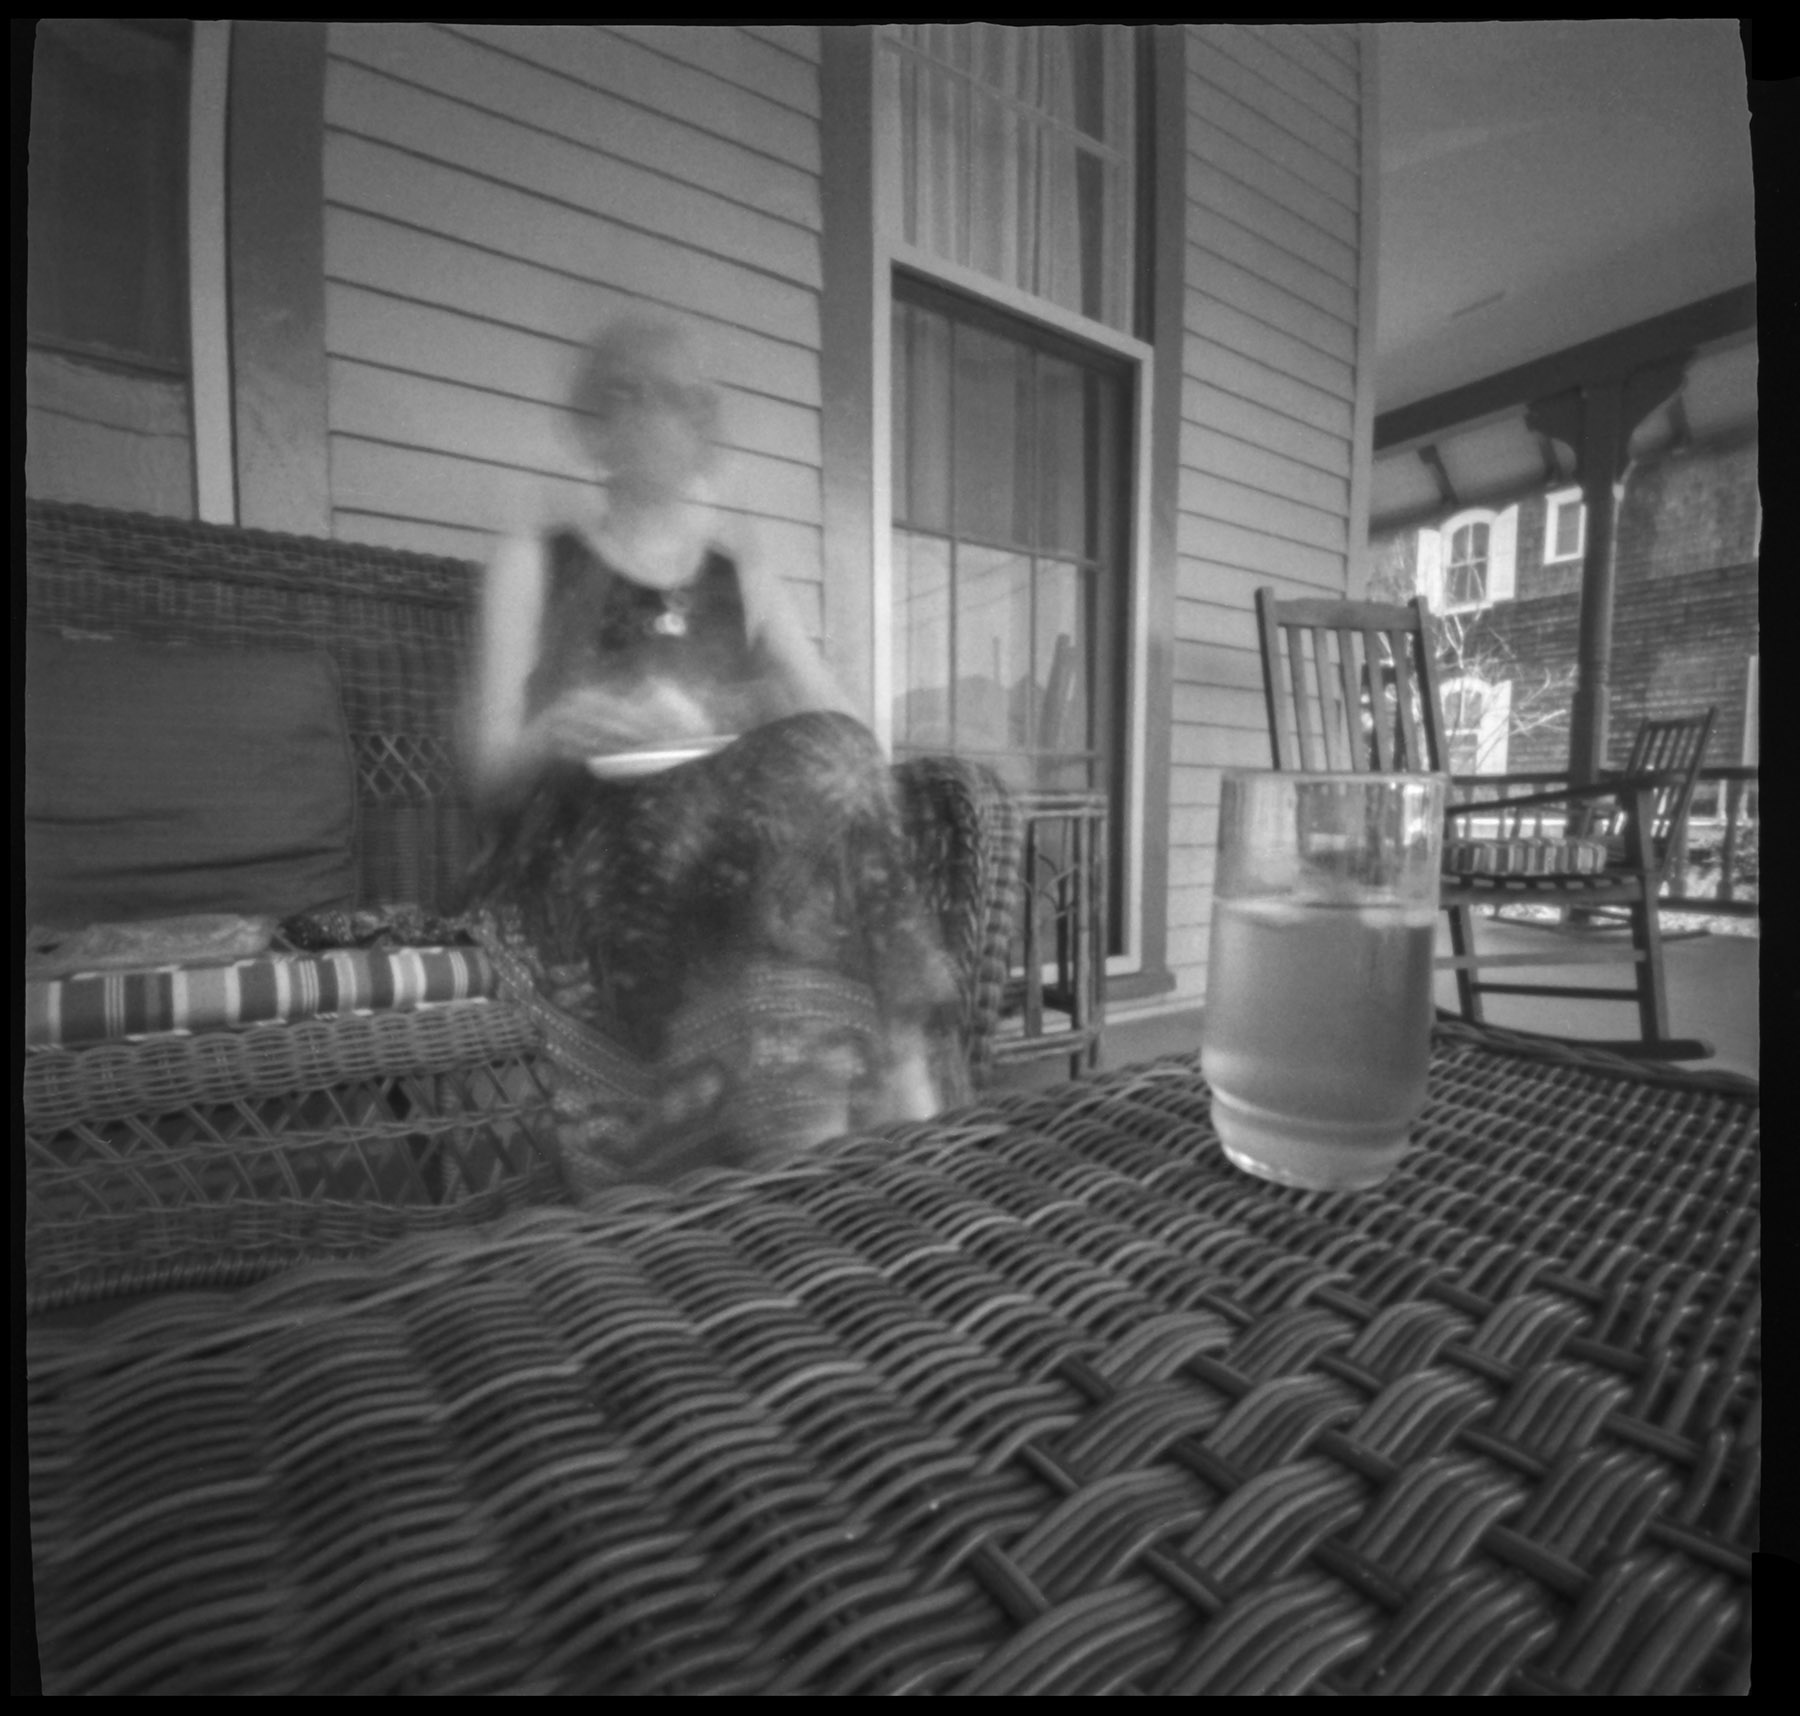 Nancy_Breslin_Pinhole Diary of Eating Out_7-2-17 Lunch in Beach Haven NJ 10 seconds_4.jpg